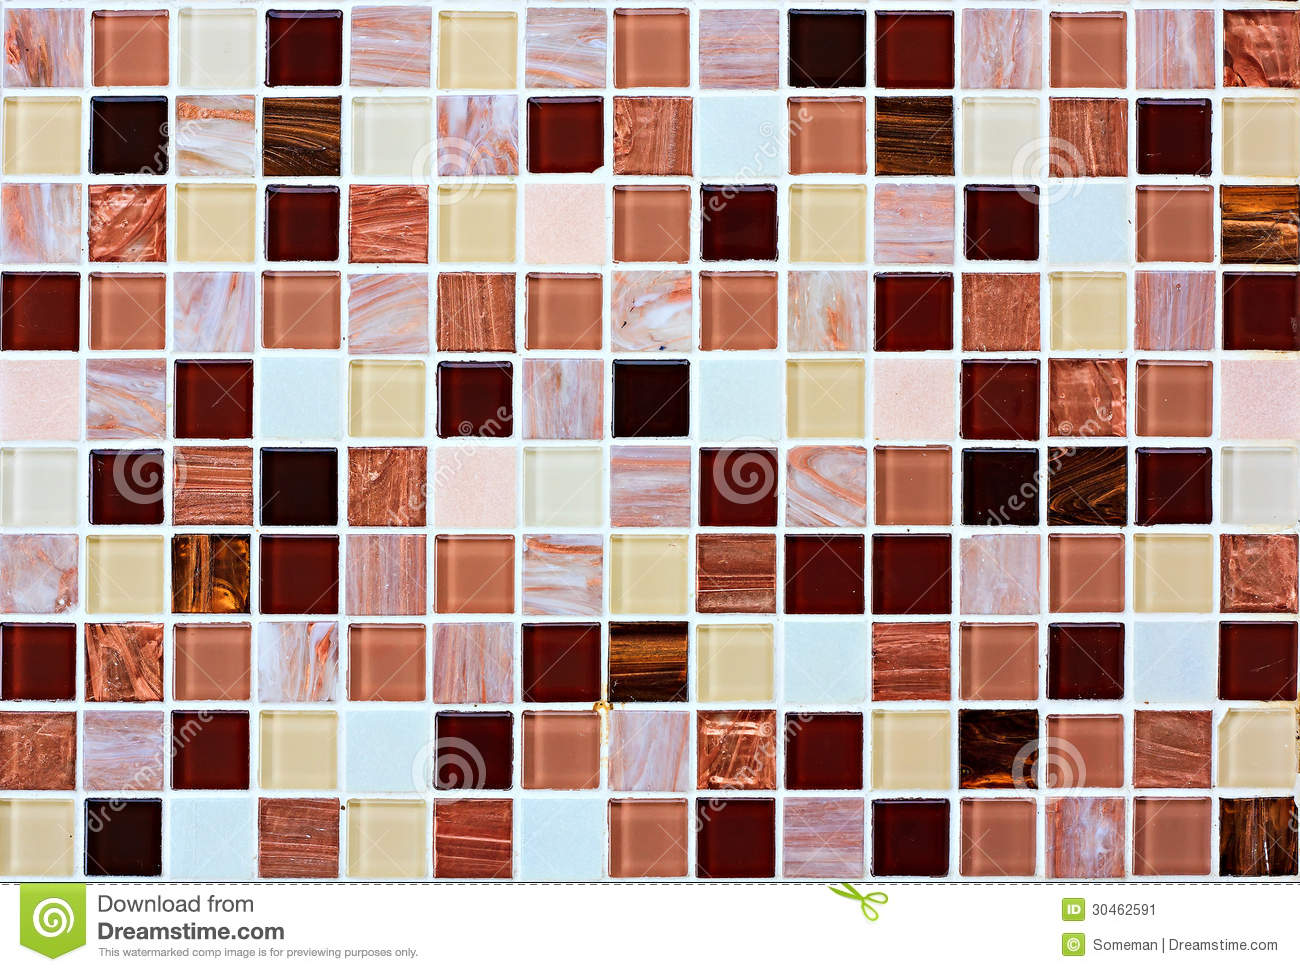 Tile mosaic tile background